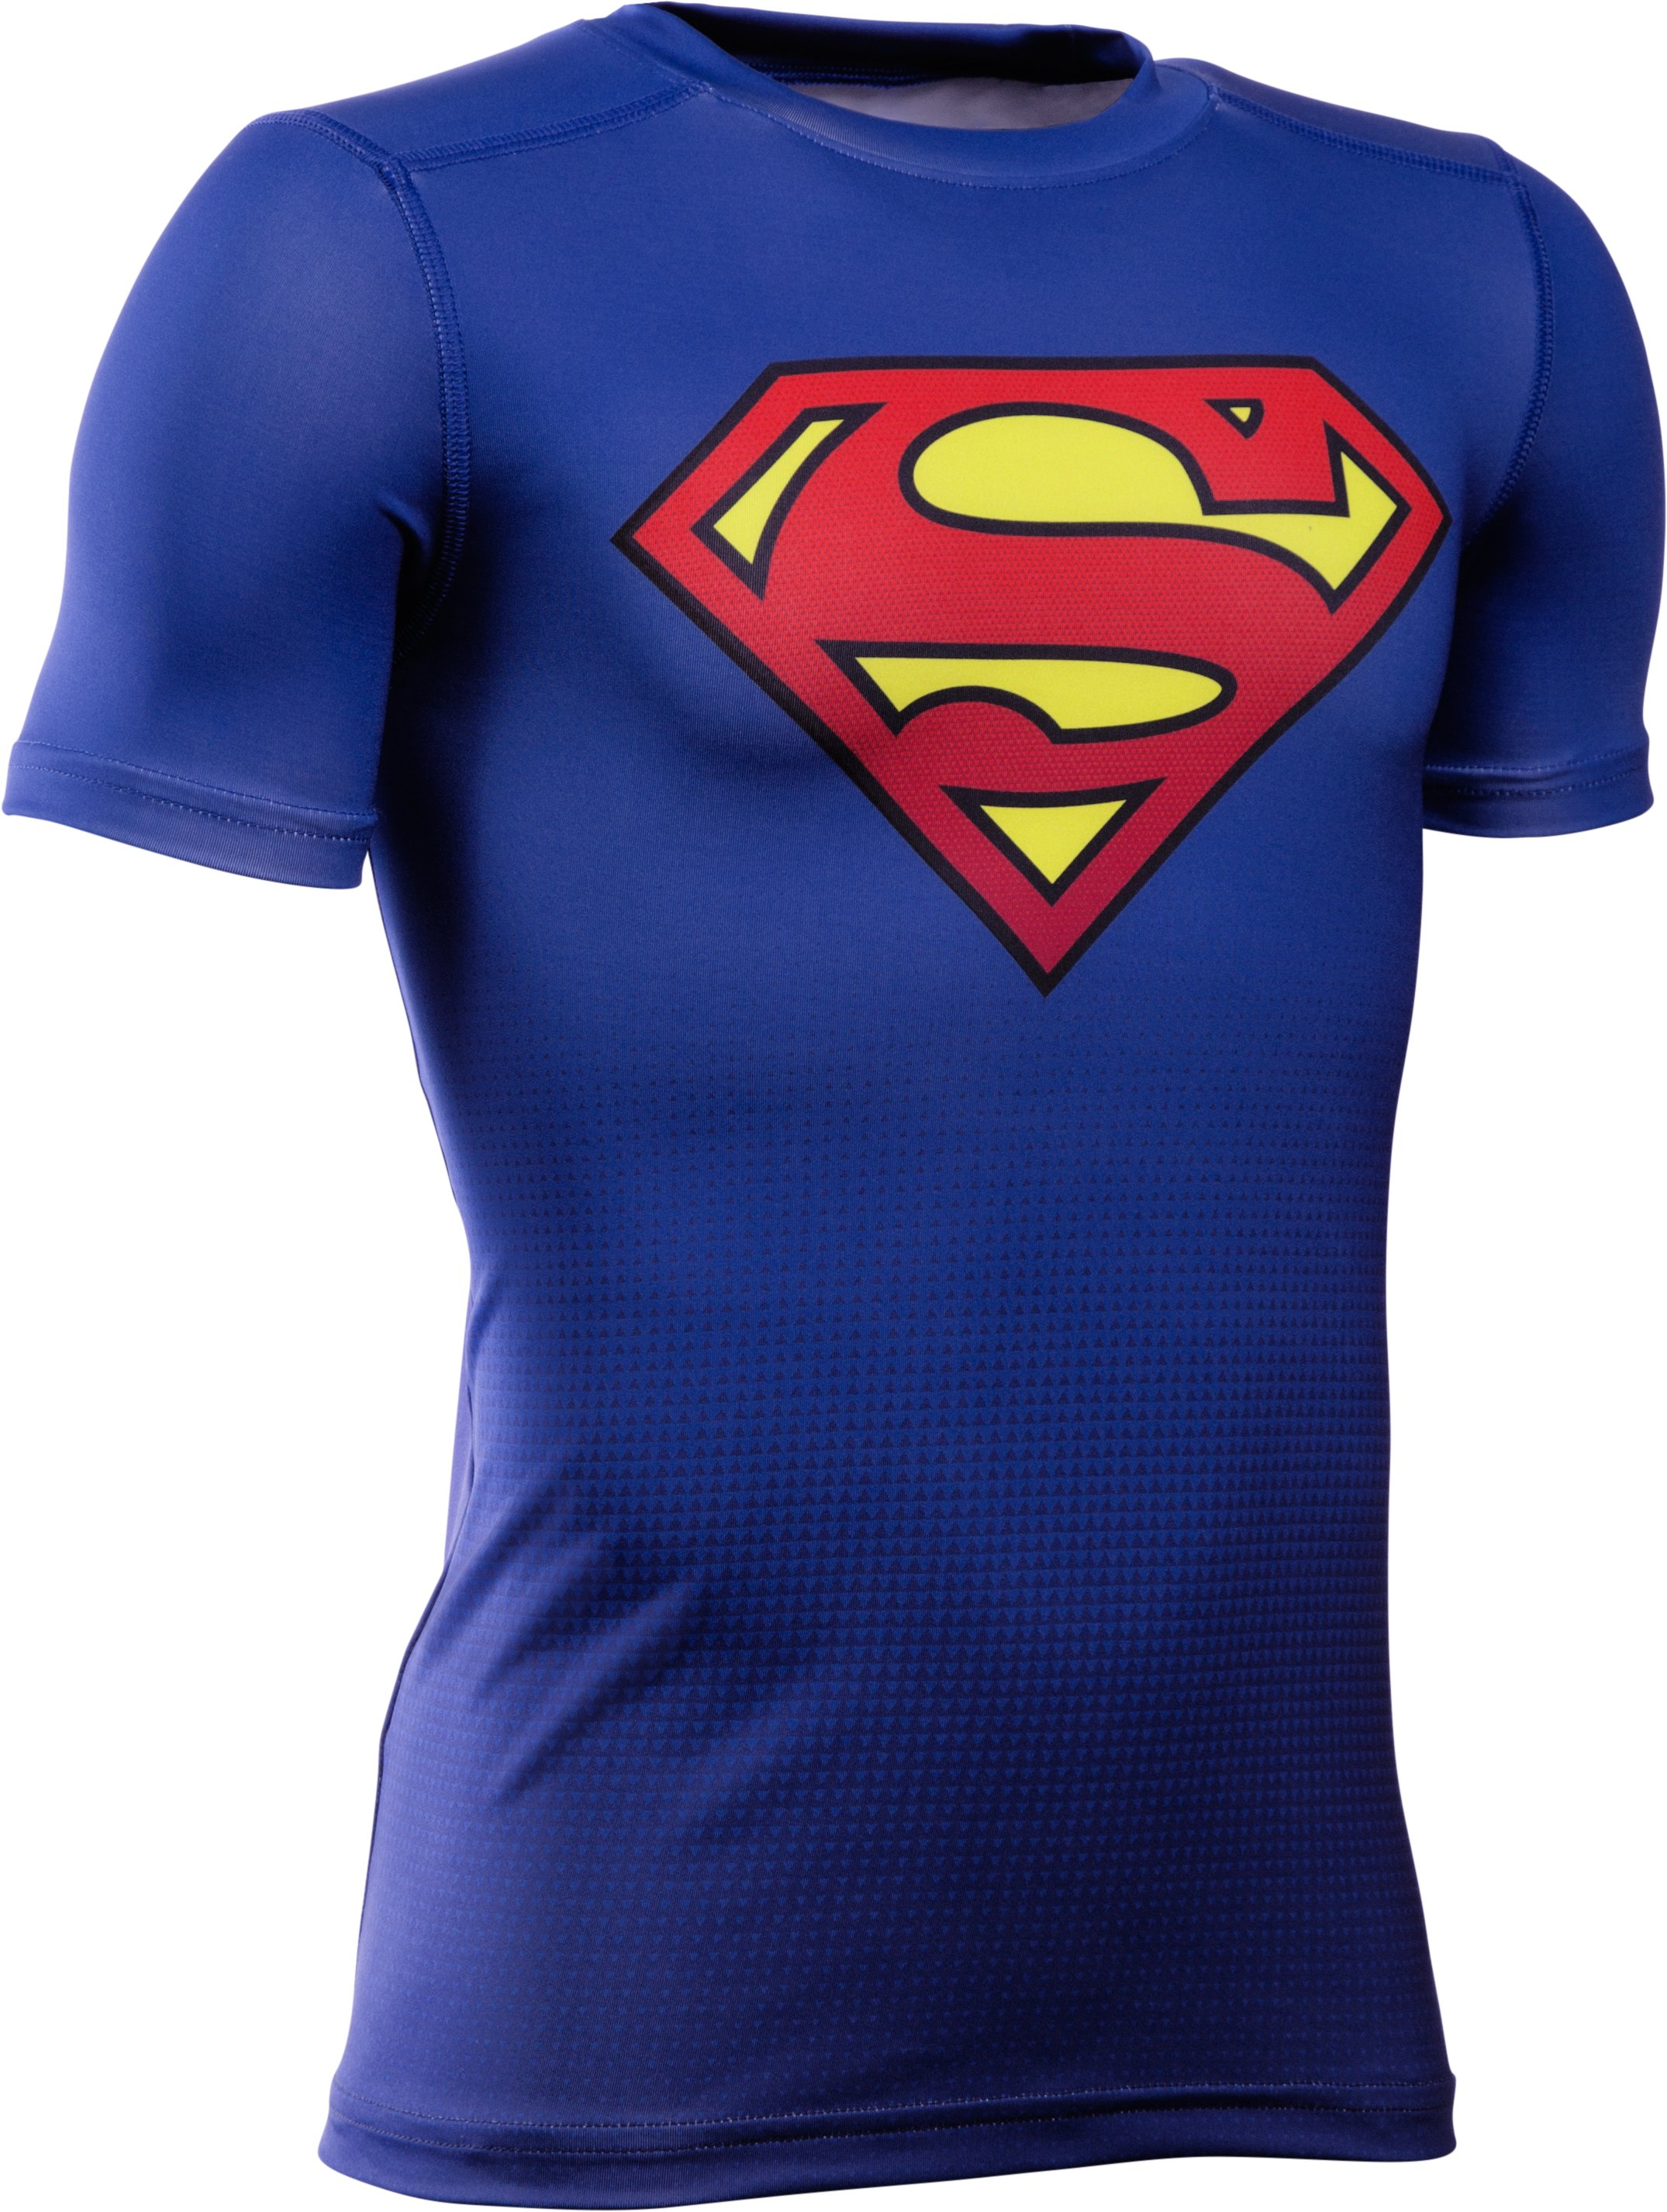 Boys' Under Armour® Alter Ego DC Comics Fitted Baselayer, Royal